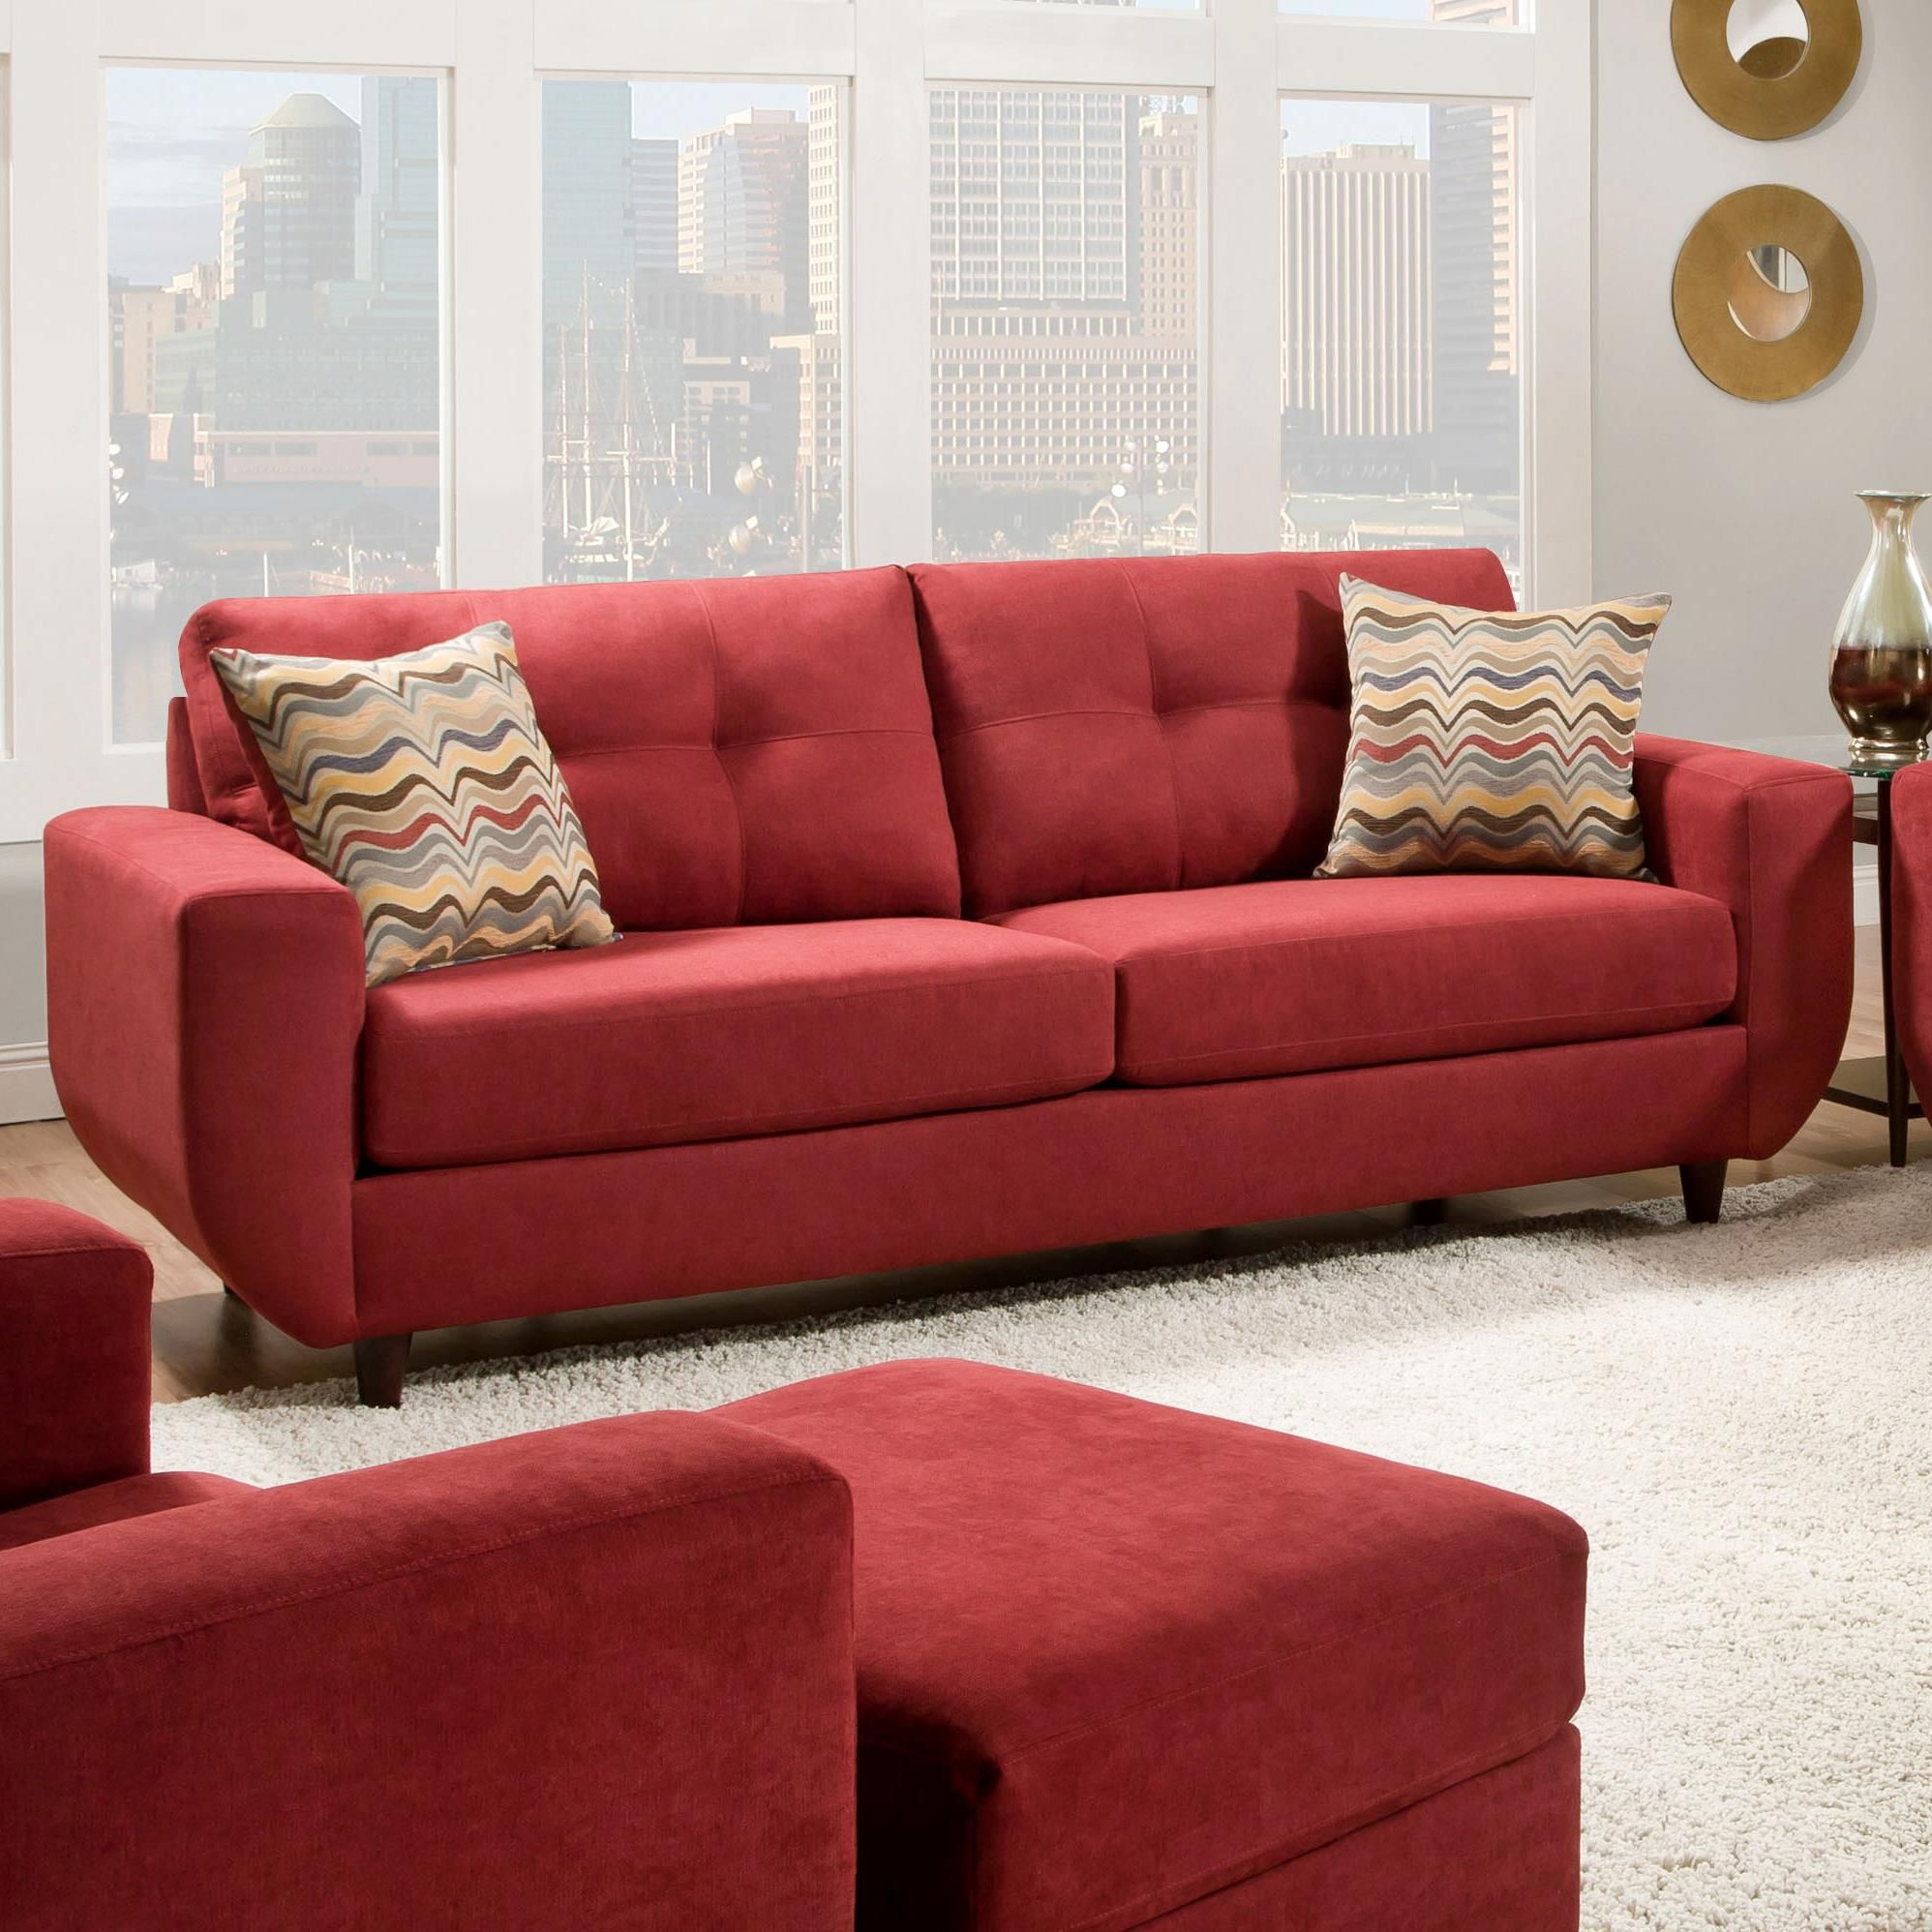 sacramento page burgundy sectional leather room manual rcwilley brant rc piece new buy couches at search tables furniture stores in match willey living jsp sectionals reclining